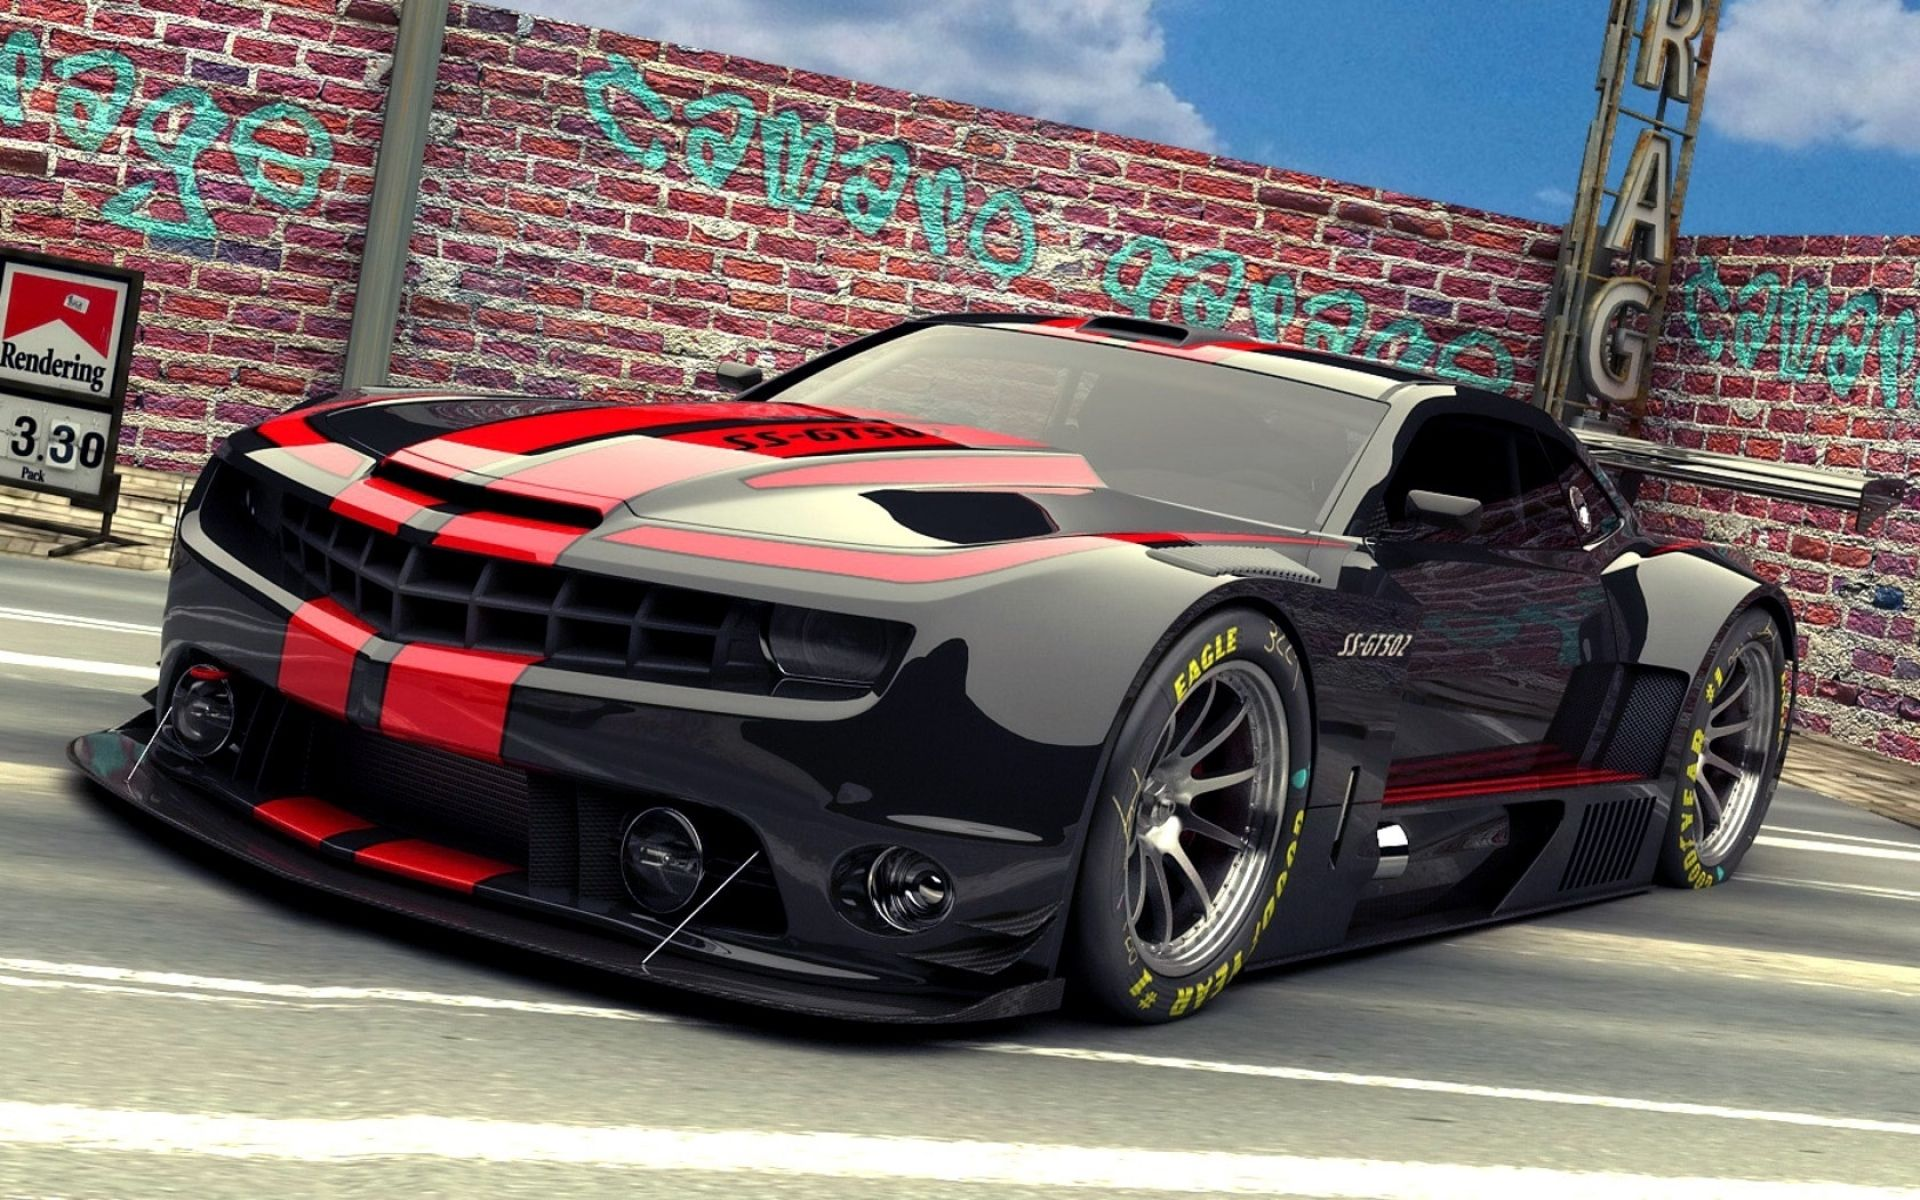 chevrolet camaro – pictures, information and specs - auto-database